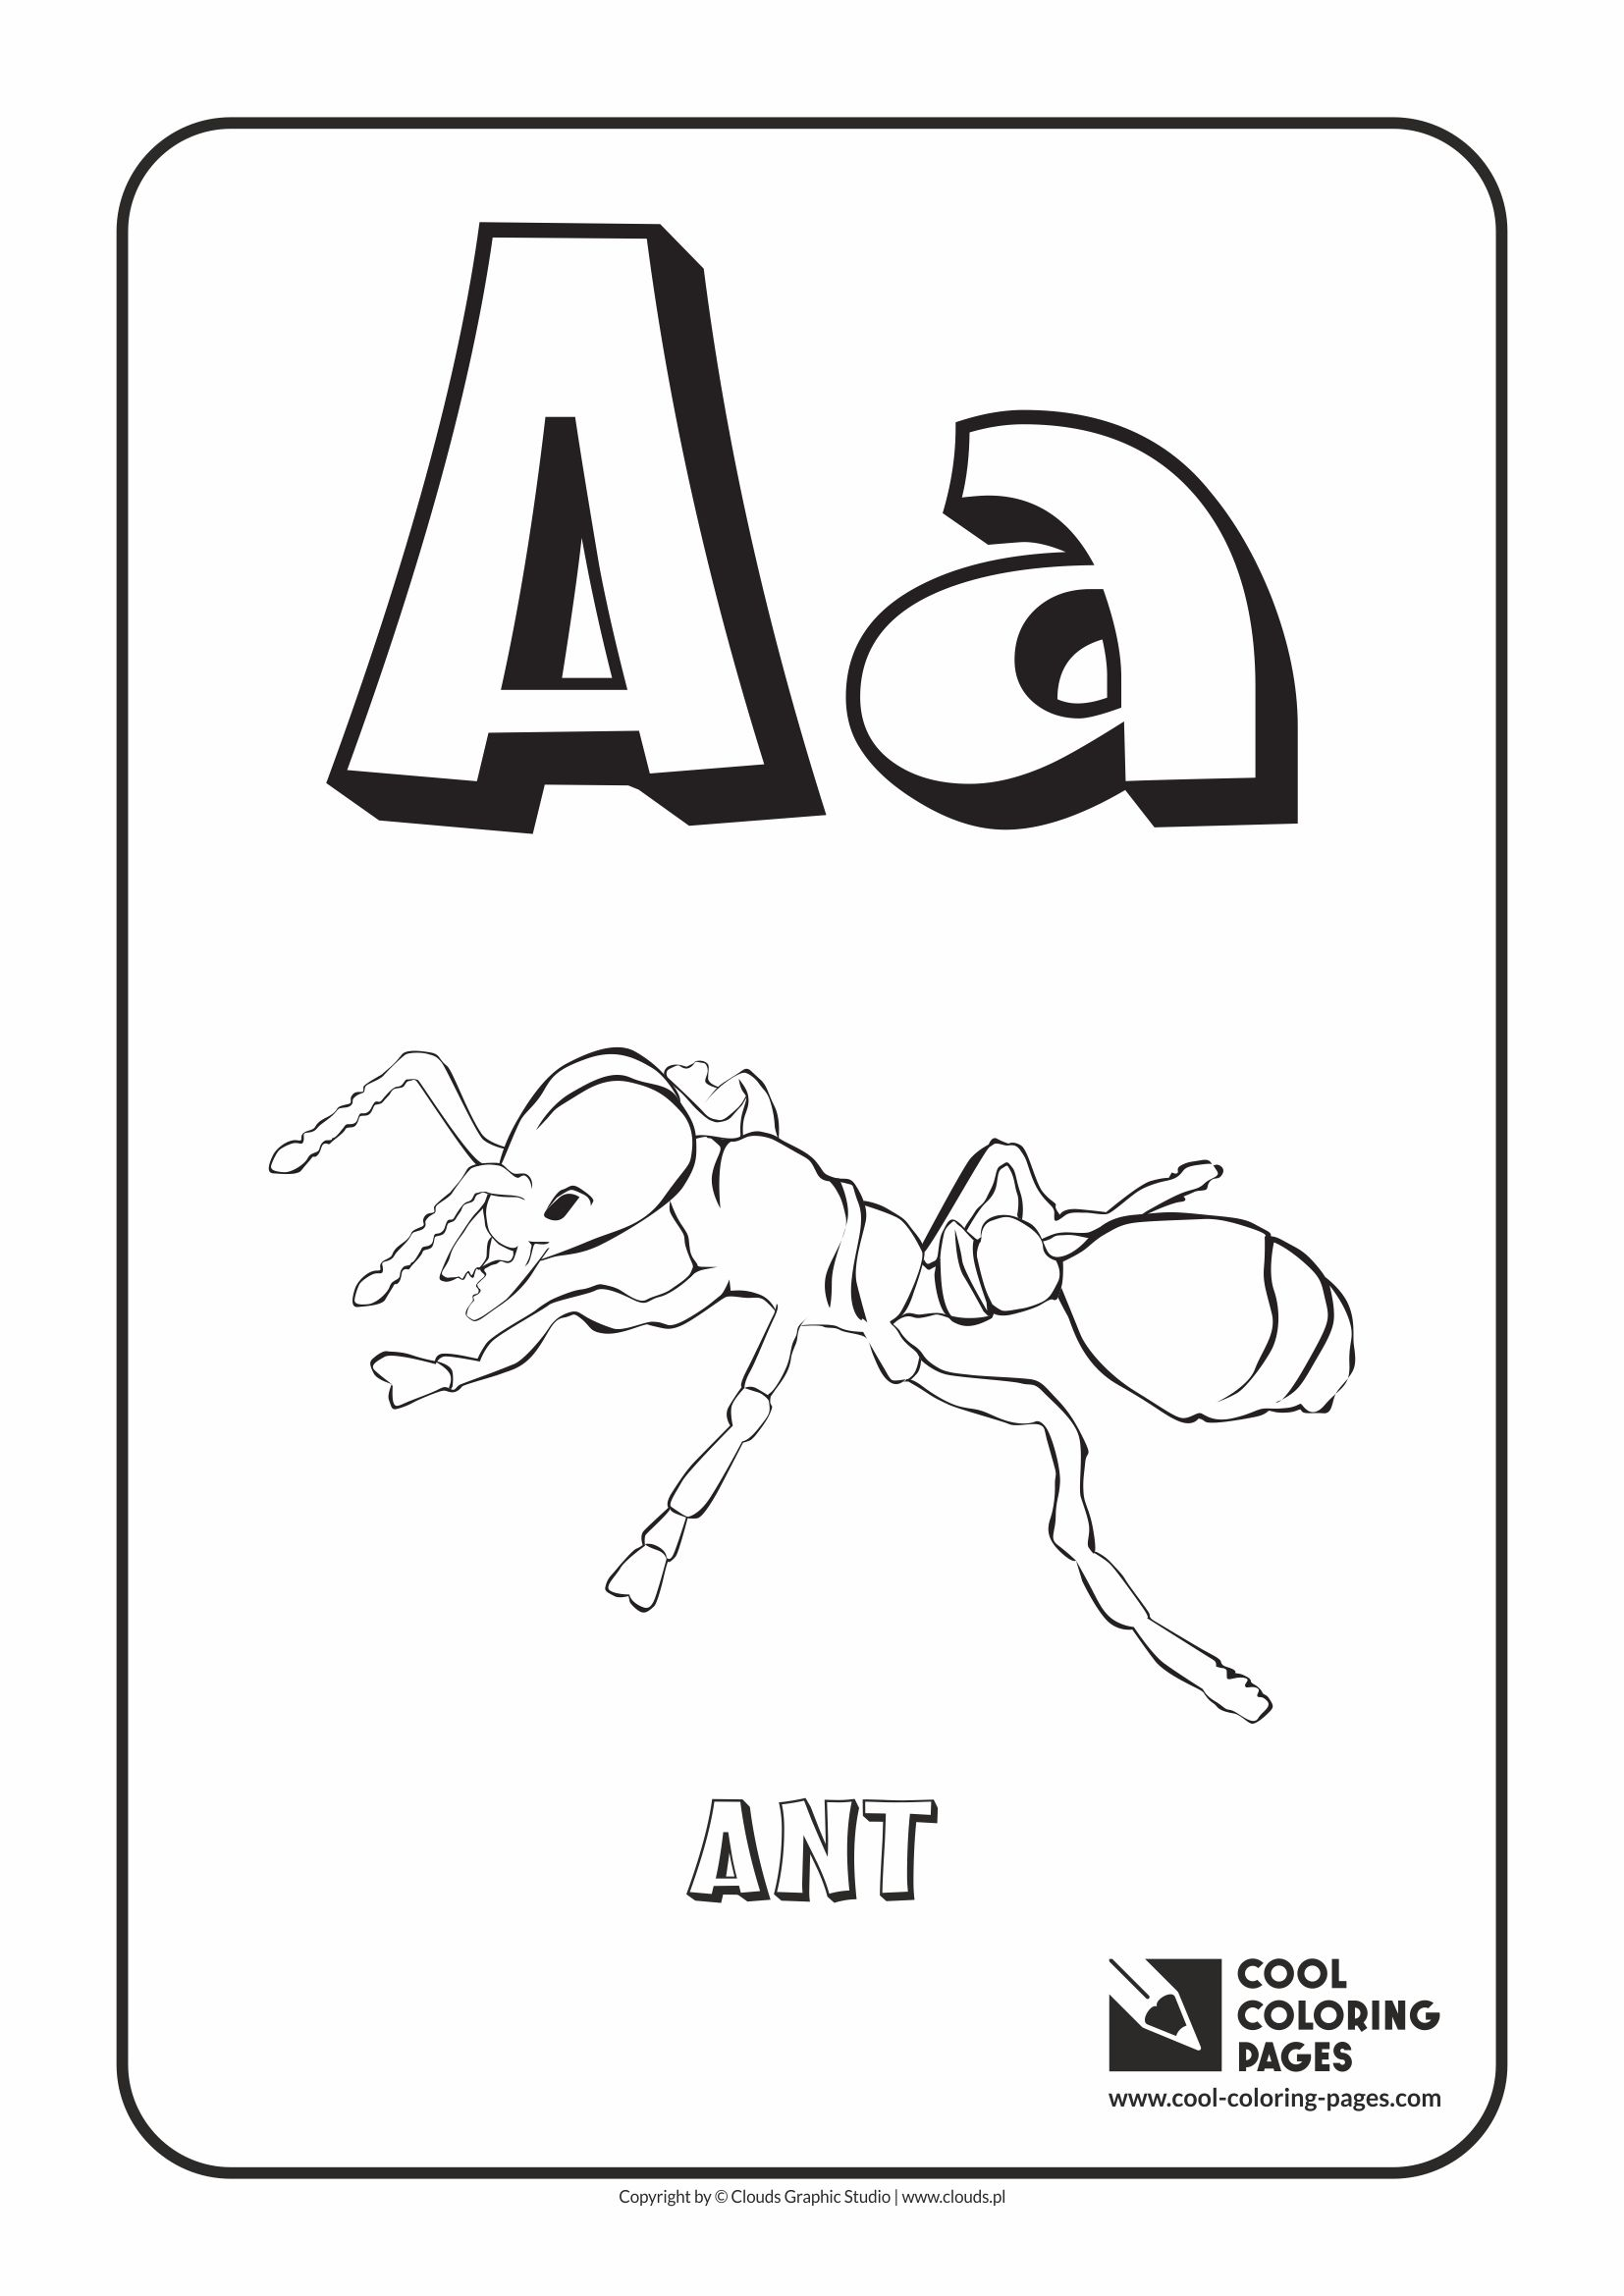 Cool Coloring Pages Alphabet coloring pages - Cool ...